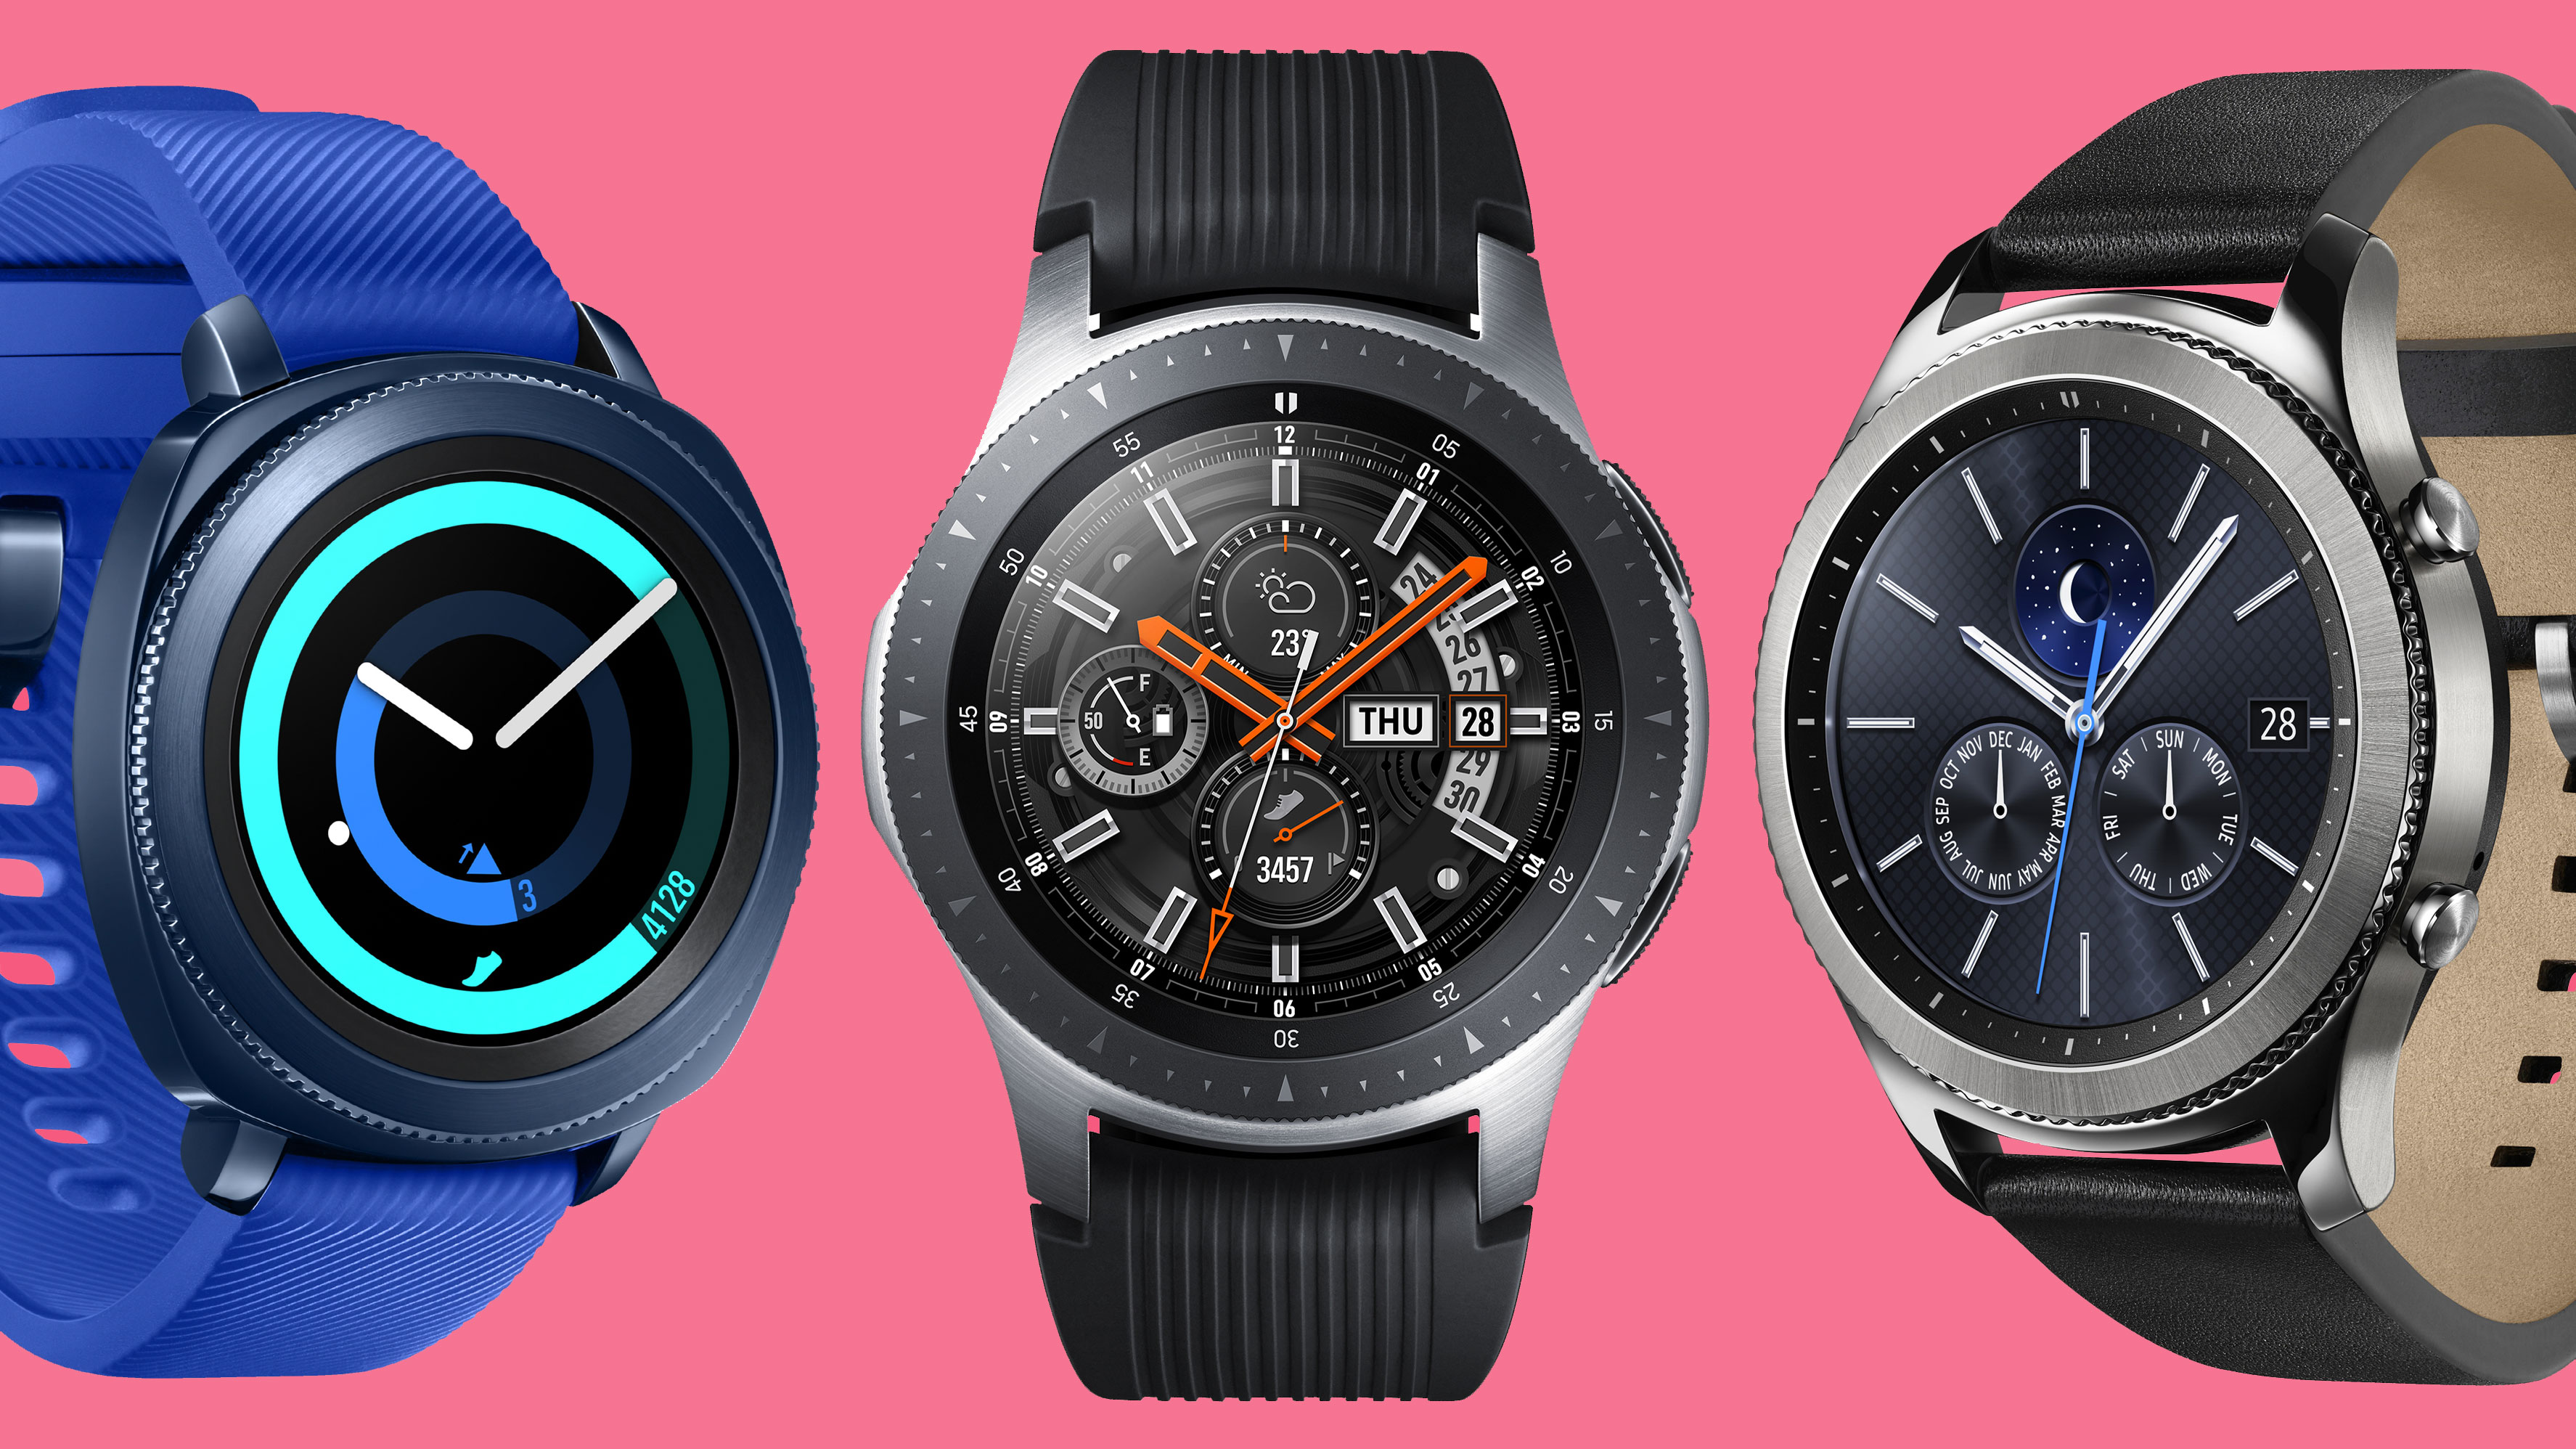 257cb21d160a The best Samsung smartwatch  our top choices for Tizen wearables in 2019